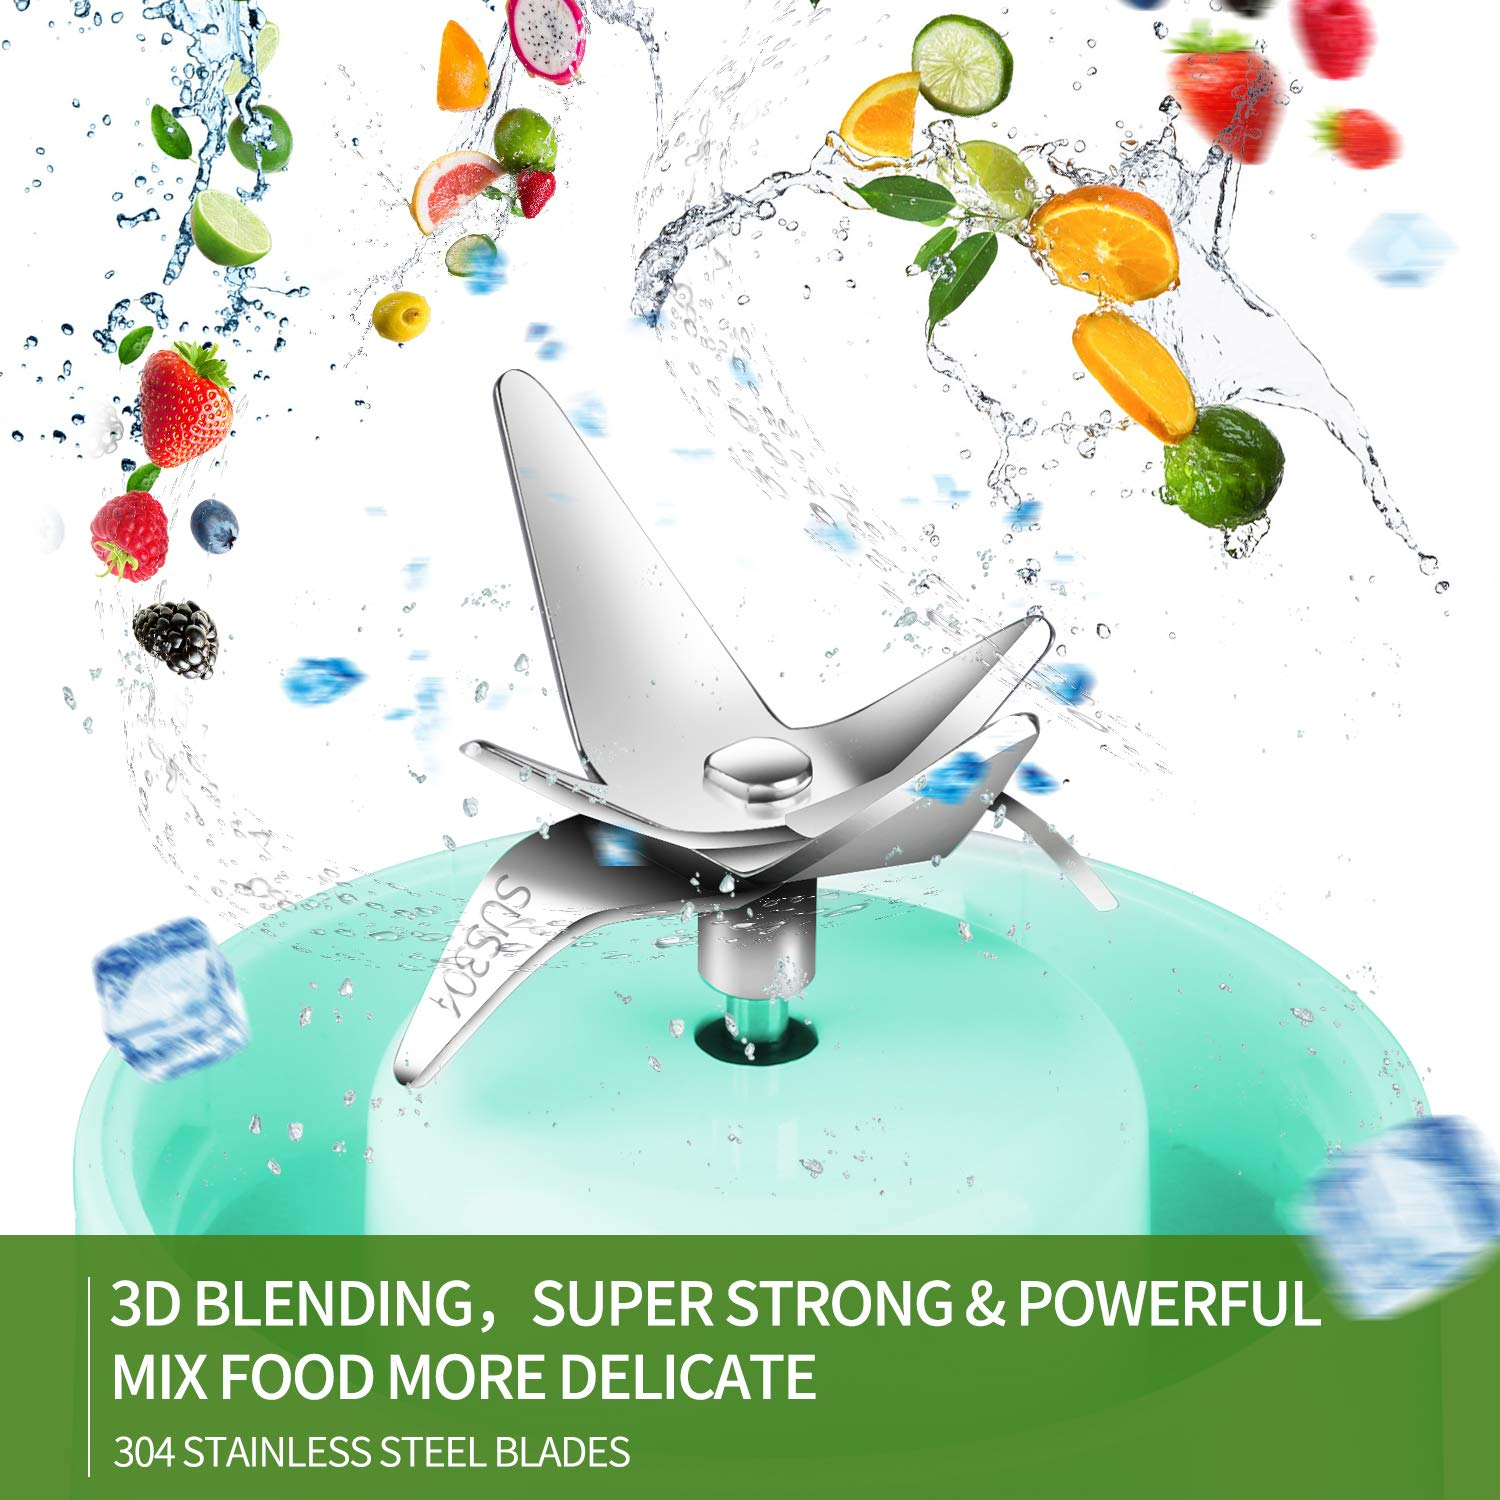 Mini Blender Jet USB Rechargeable with Glass Bottle for Baby Food Yeaky Portable Blender 16oz Juicer Cup with Detachable Base Blue Powerful Personal Blender for Smoothie and Shakes Home Outdoor Office and Travel